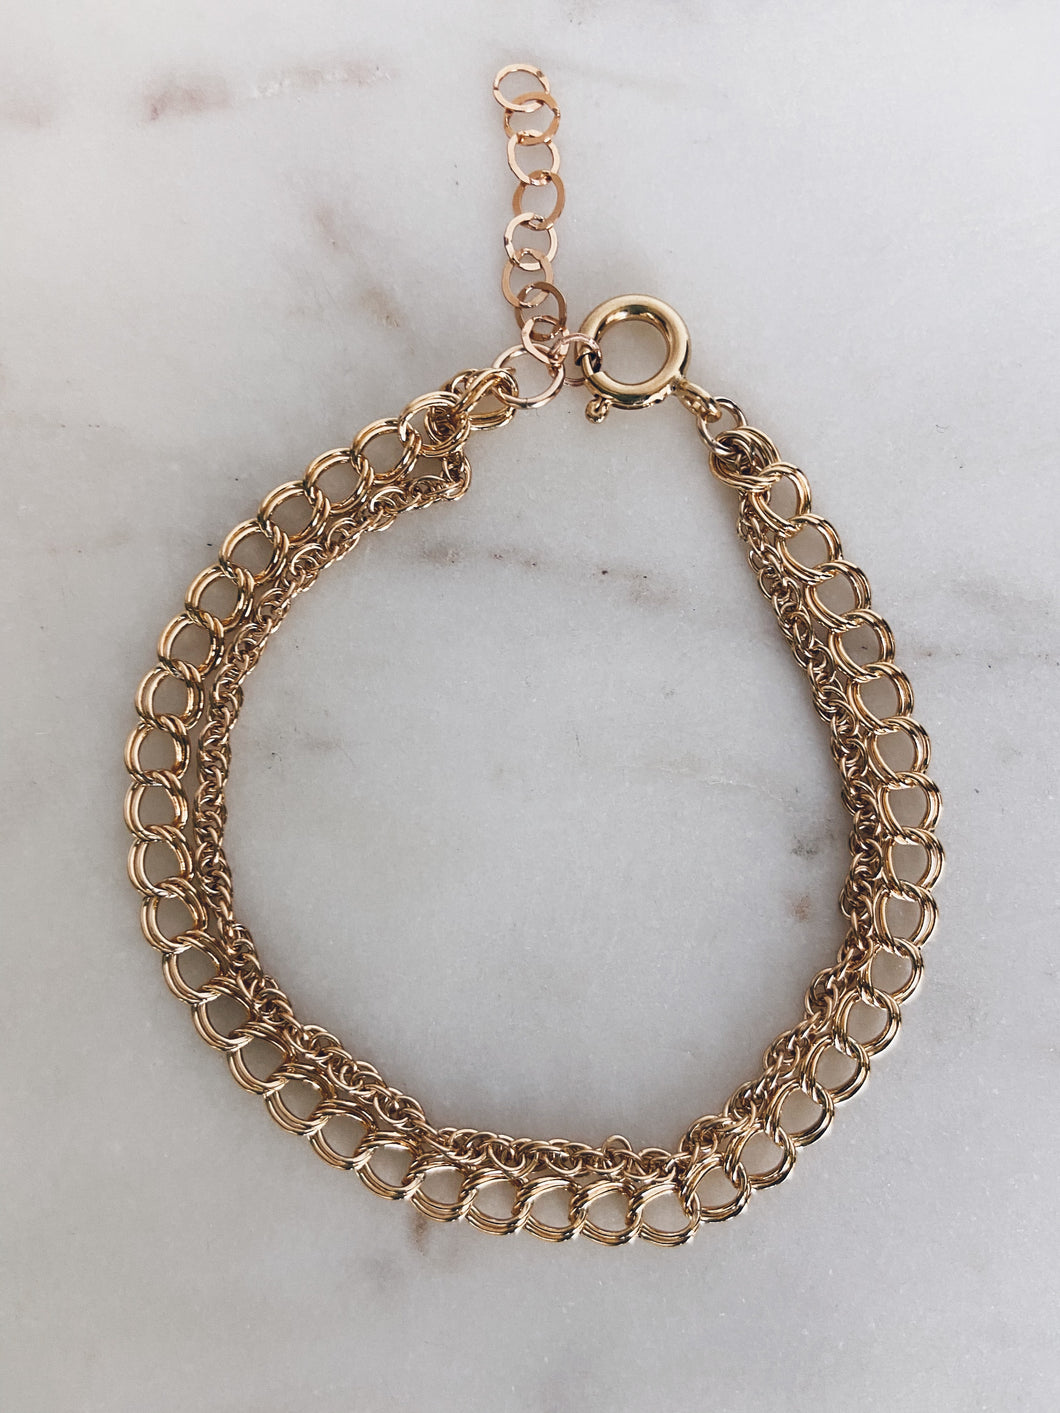 14k Gold Filled Rope & Curb Chain Layered Bracelet